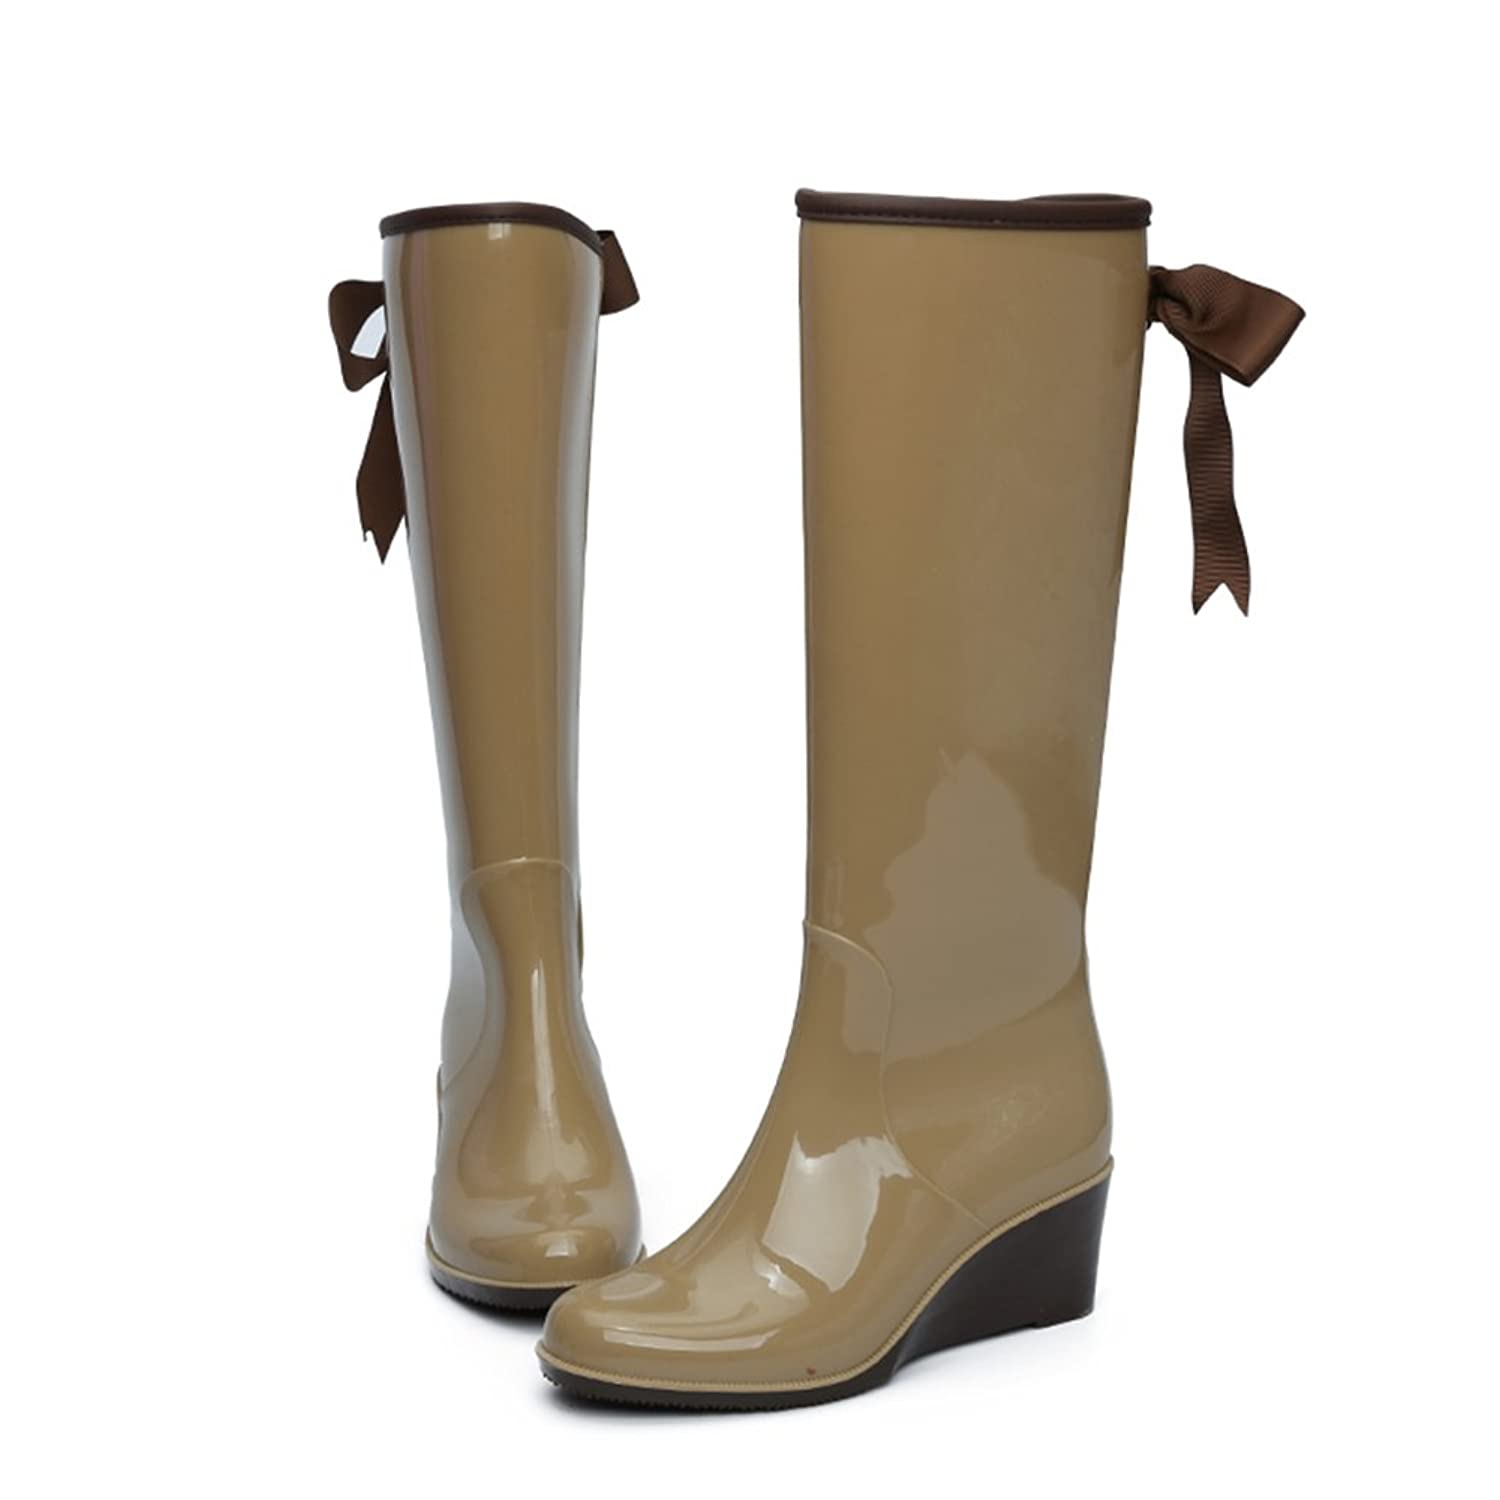 fereshte Women's Wedge Heel Side Zipper Waterproof Priting Attached Fleece  Lining Rain Boots With Bow: Amazon.co.uk: Shoes & Bags